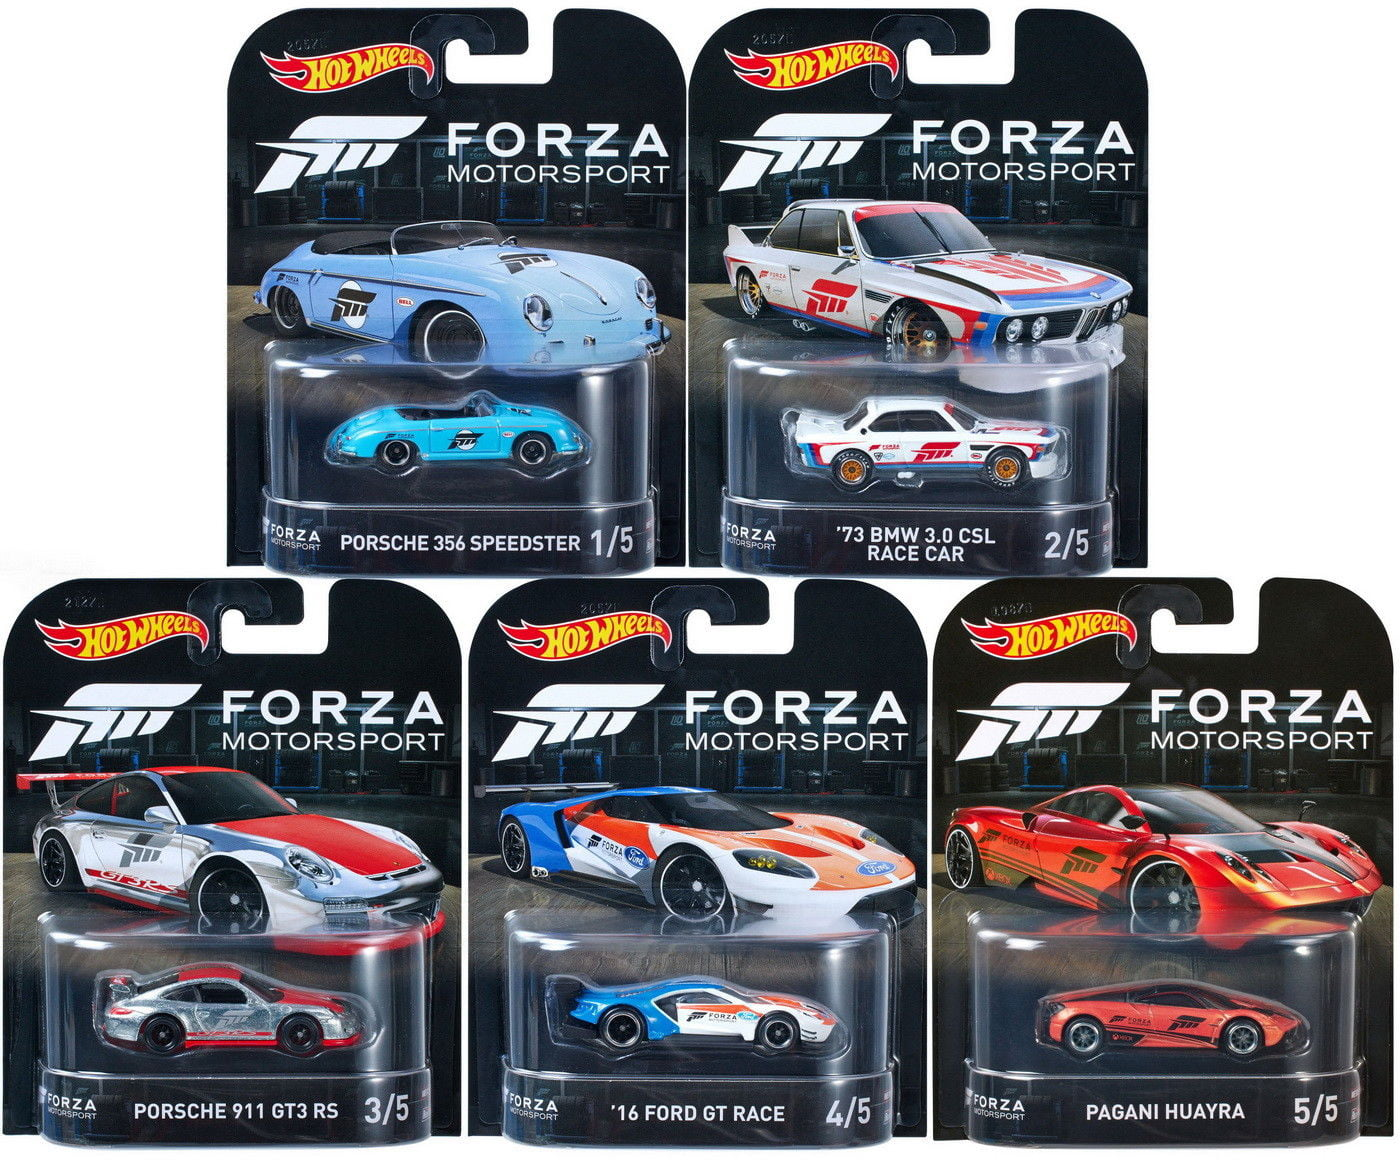 Hot Wheels 2017 Retro Entertainment FORZA Motorsport Set of 5 1 64 Scale Collectible Die Cast Toy Model Cars by